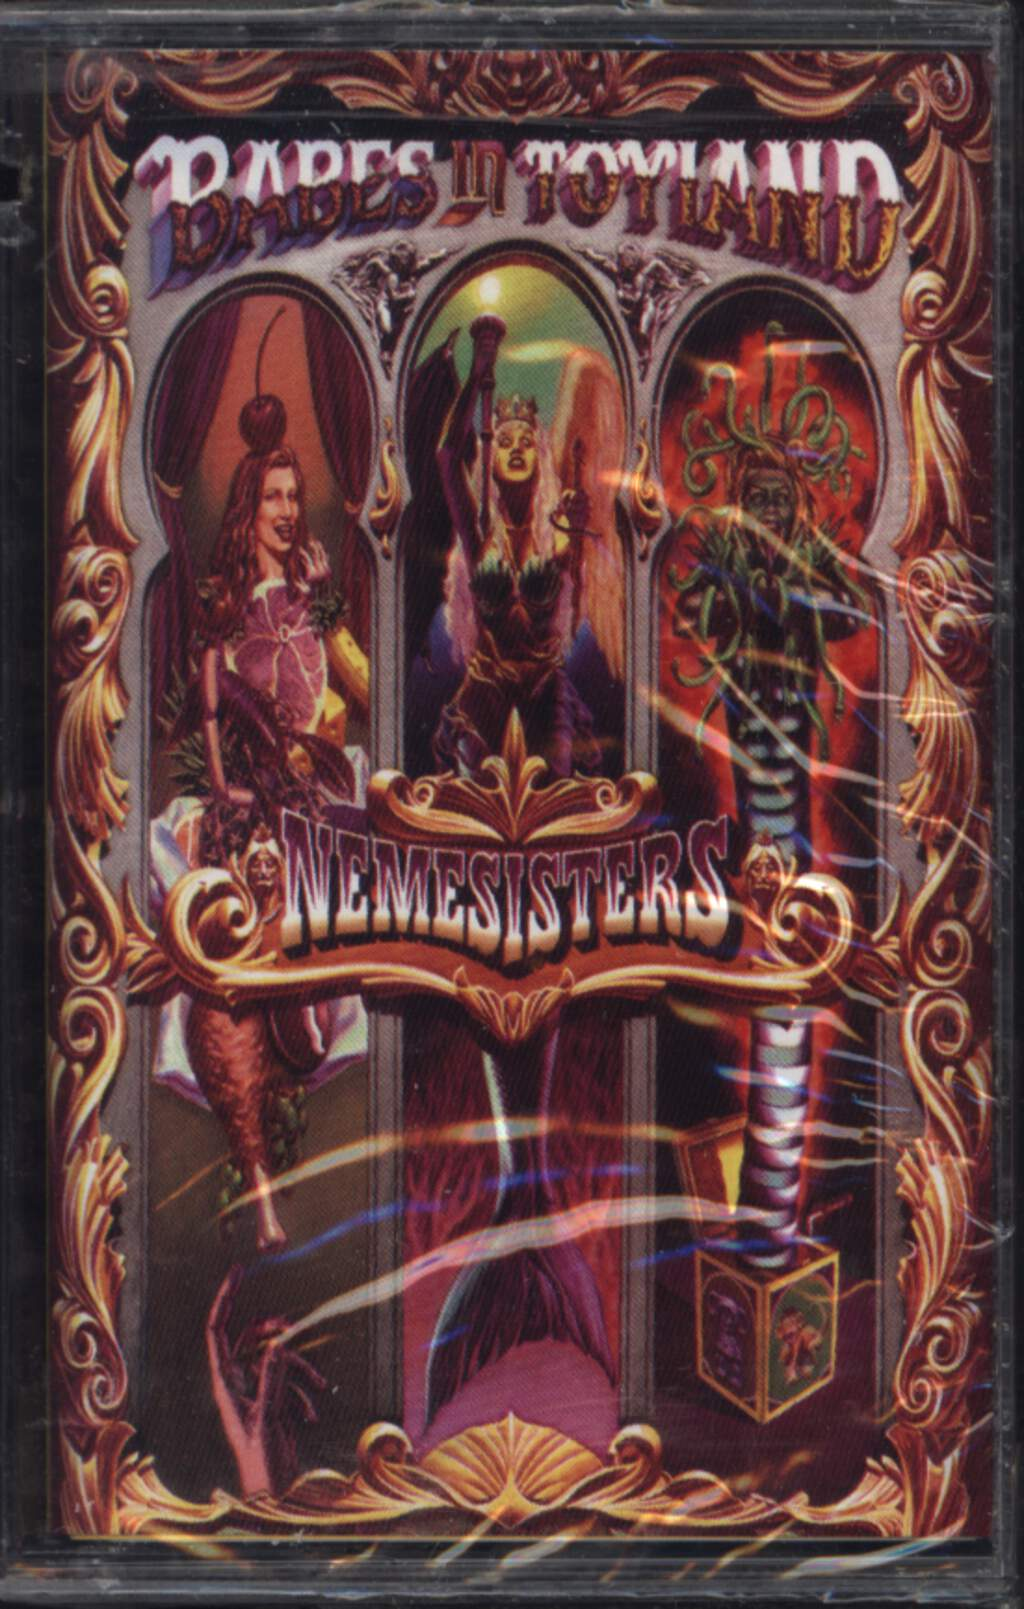 Babes in Toyland: Nemesisters, Compact Cassette